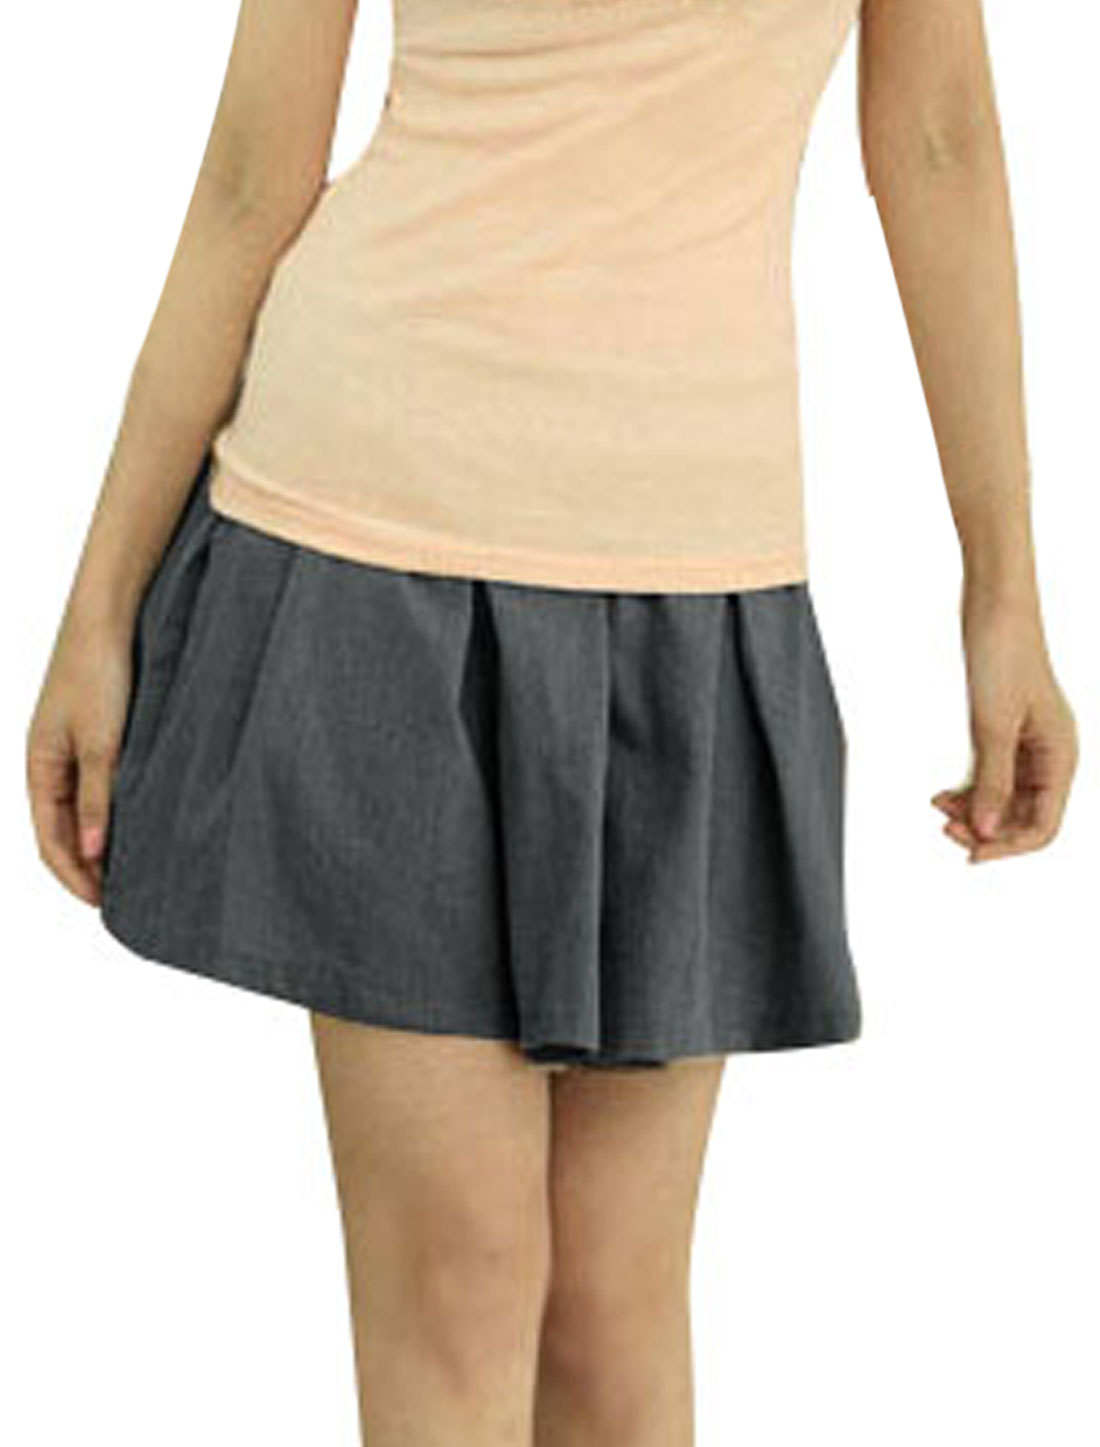 Women Dark Gray Elastic Waist Divided Skirt Pantskirt XS